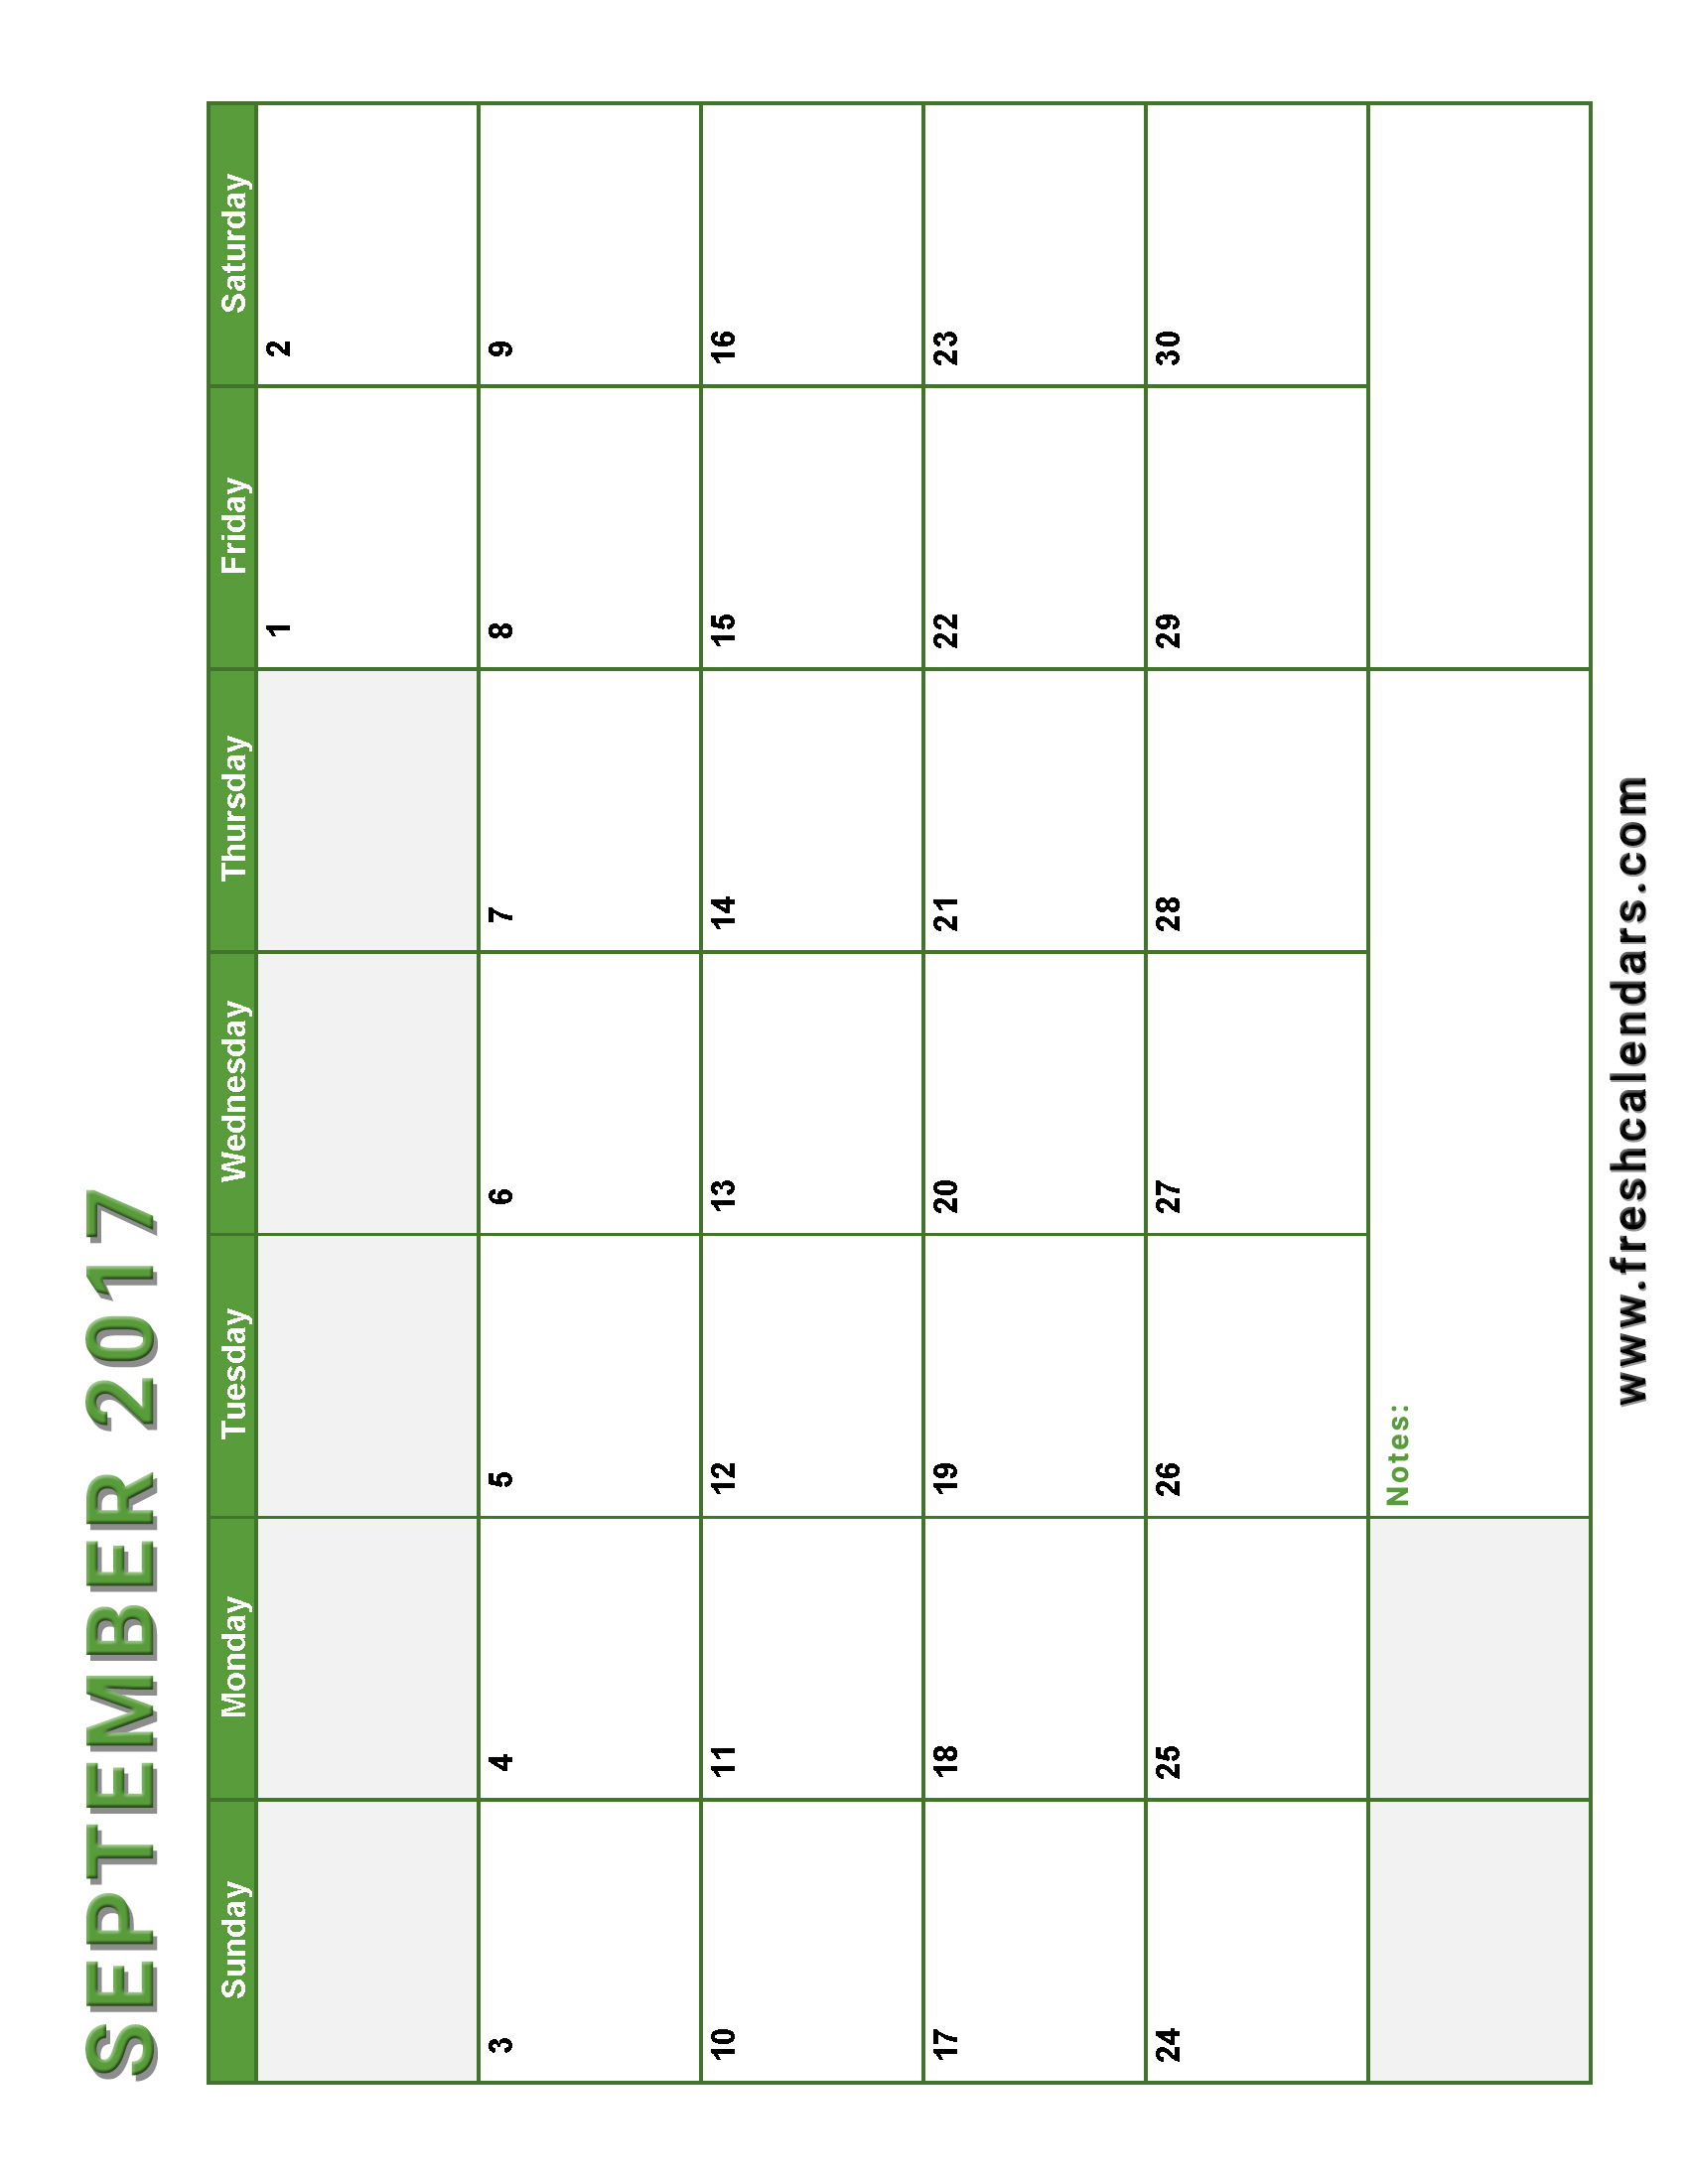 Vertical September 2017 Calendar Green Color Printable Free With Notes